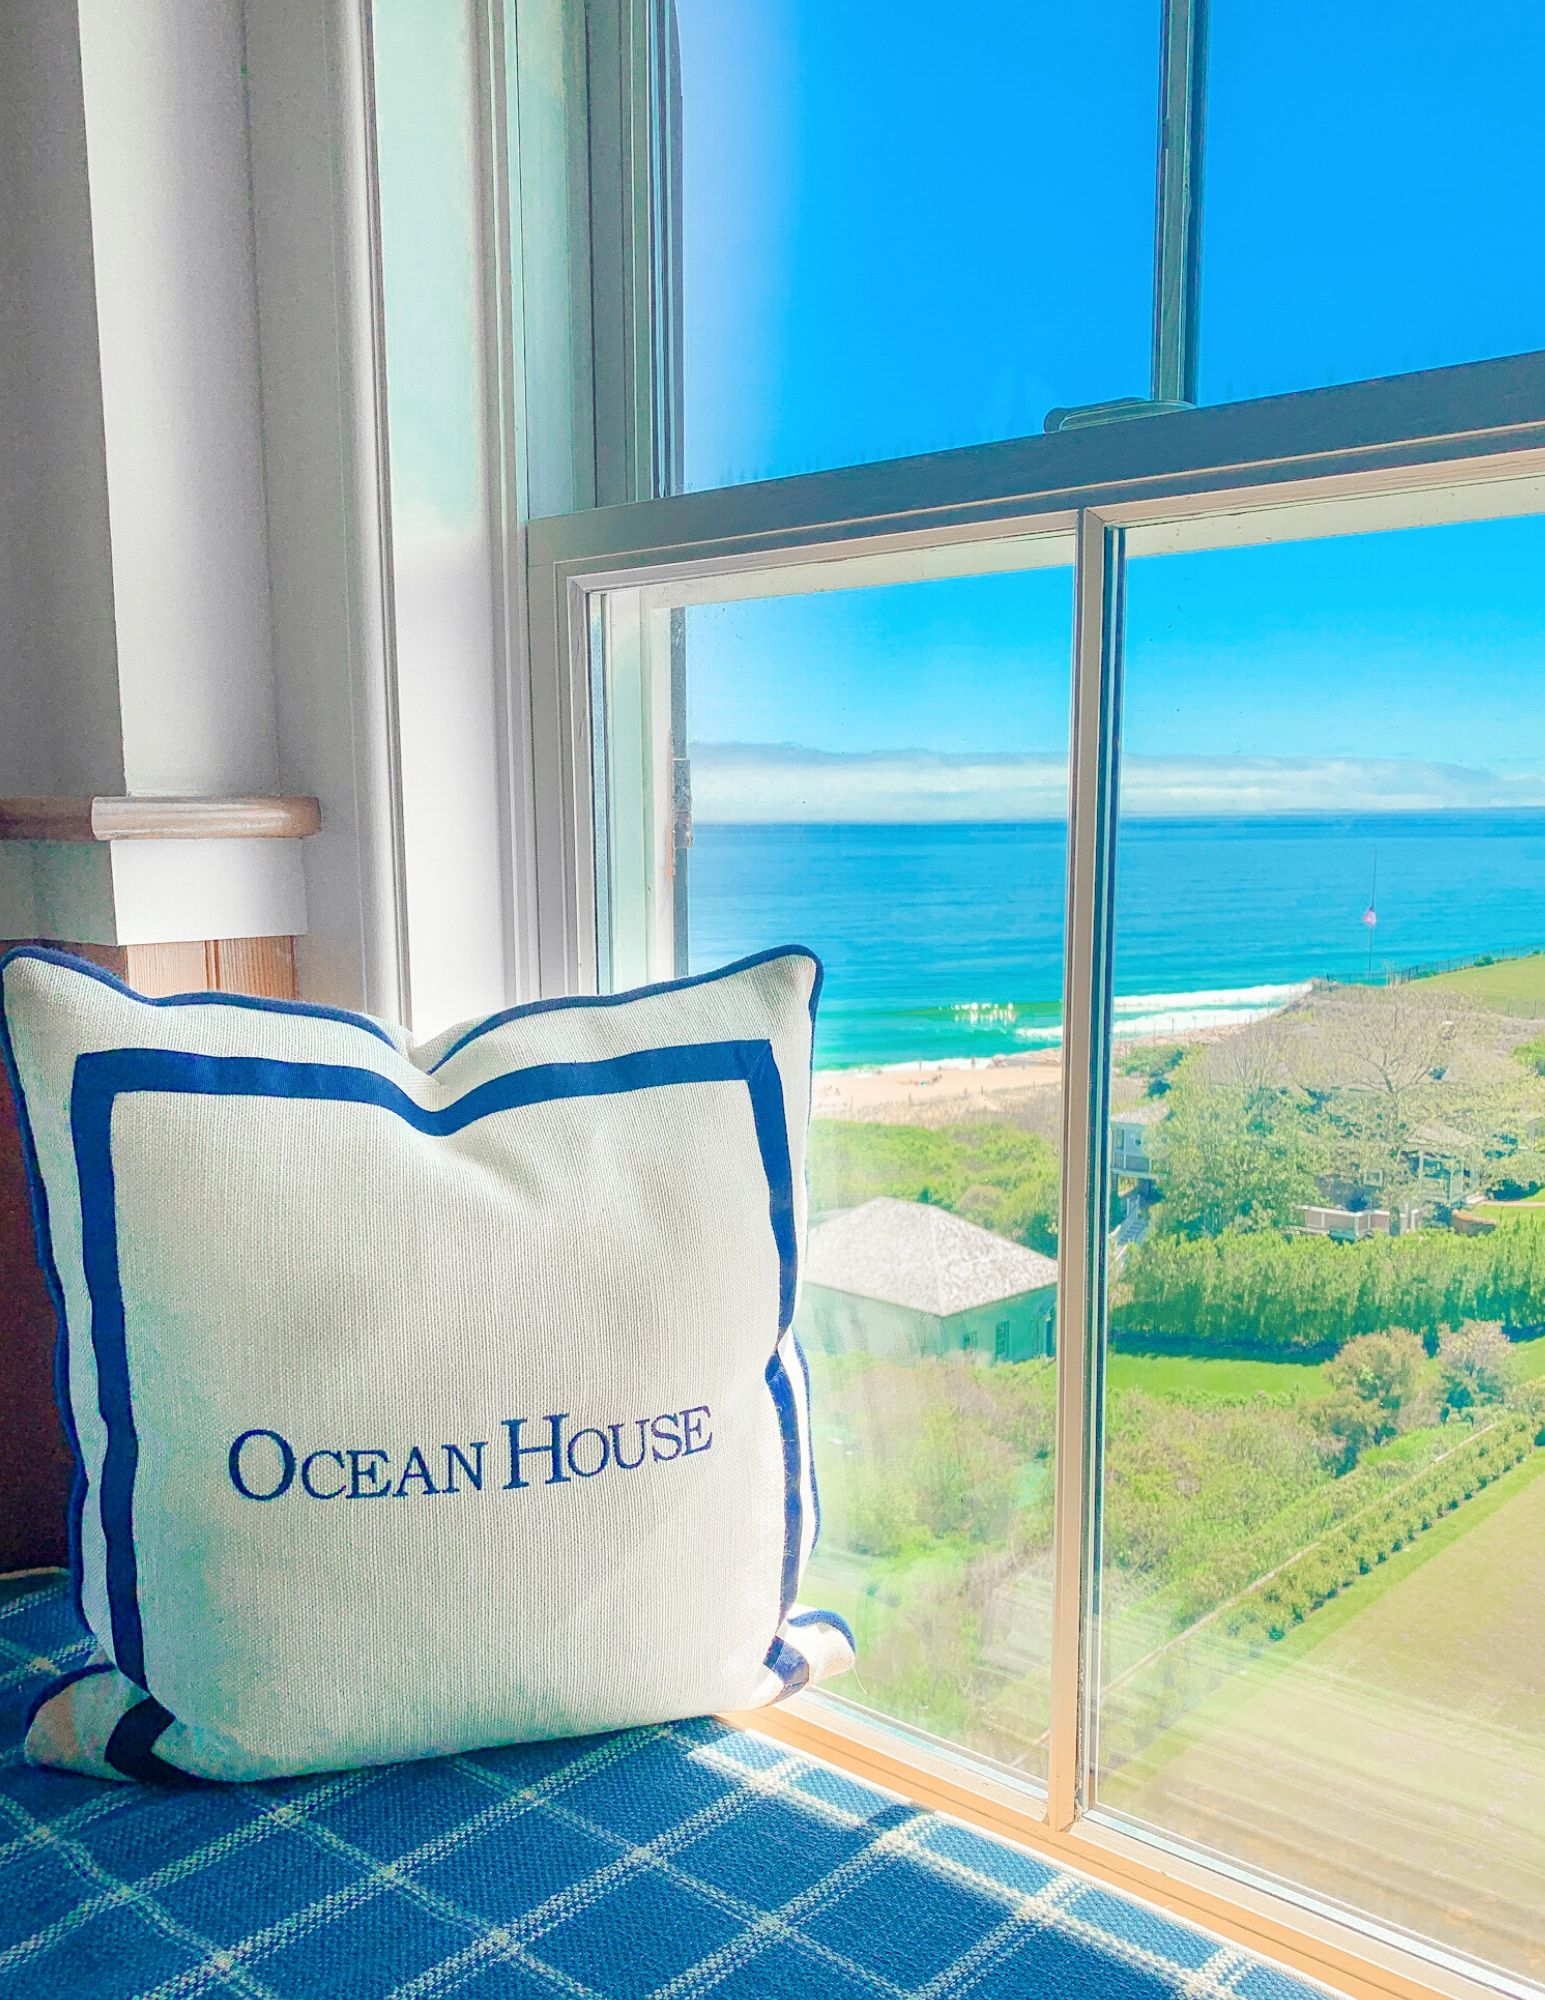 Ocean House Watch Hill Rhode Island-23